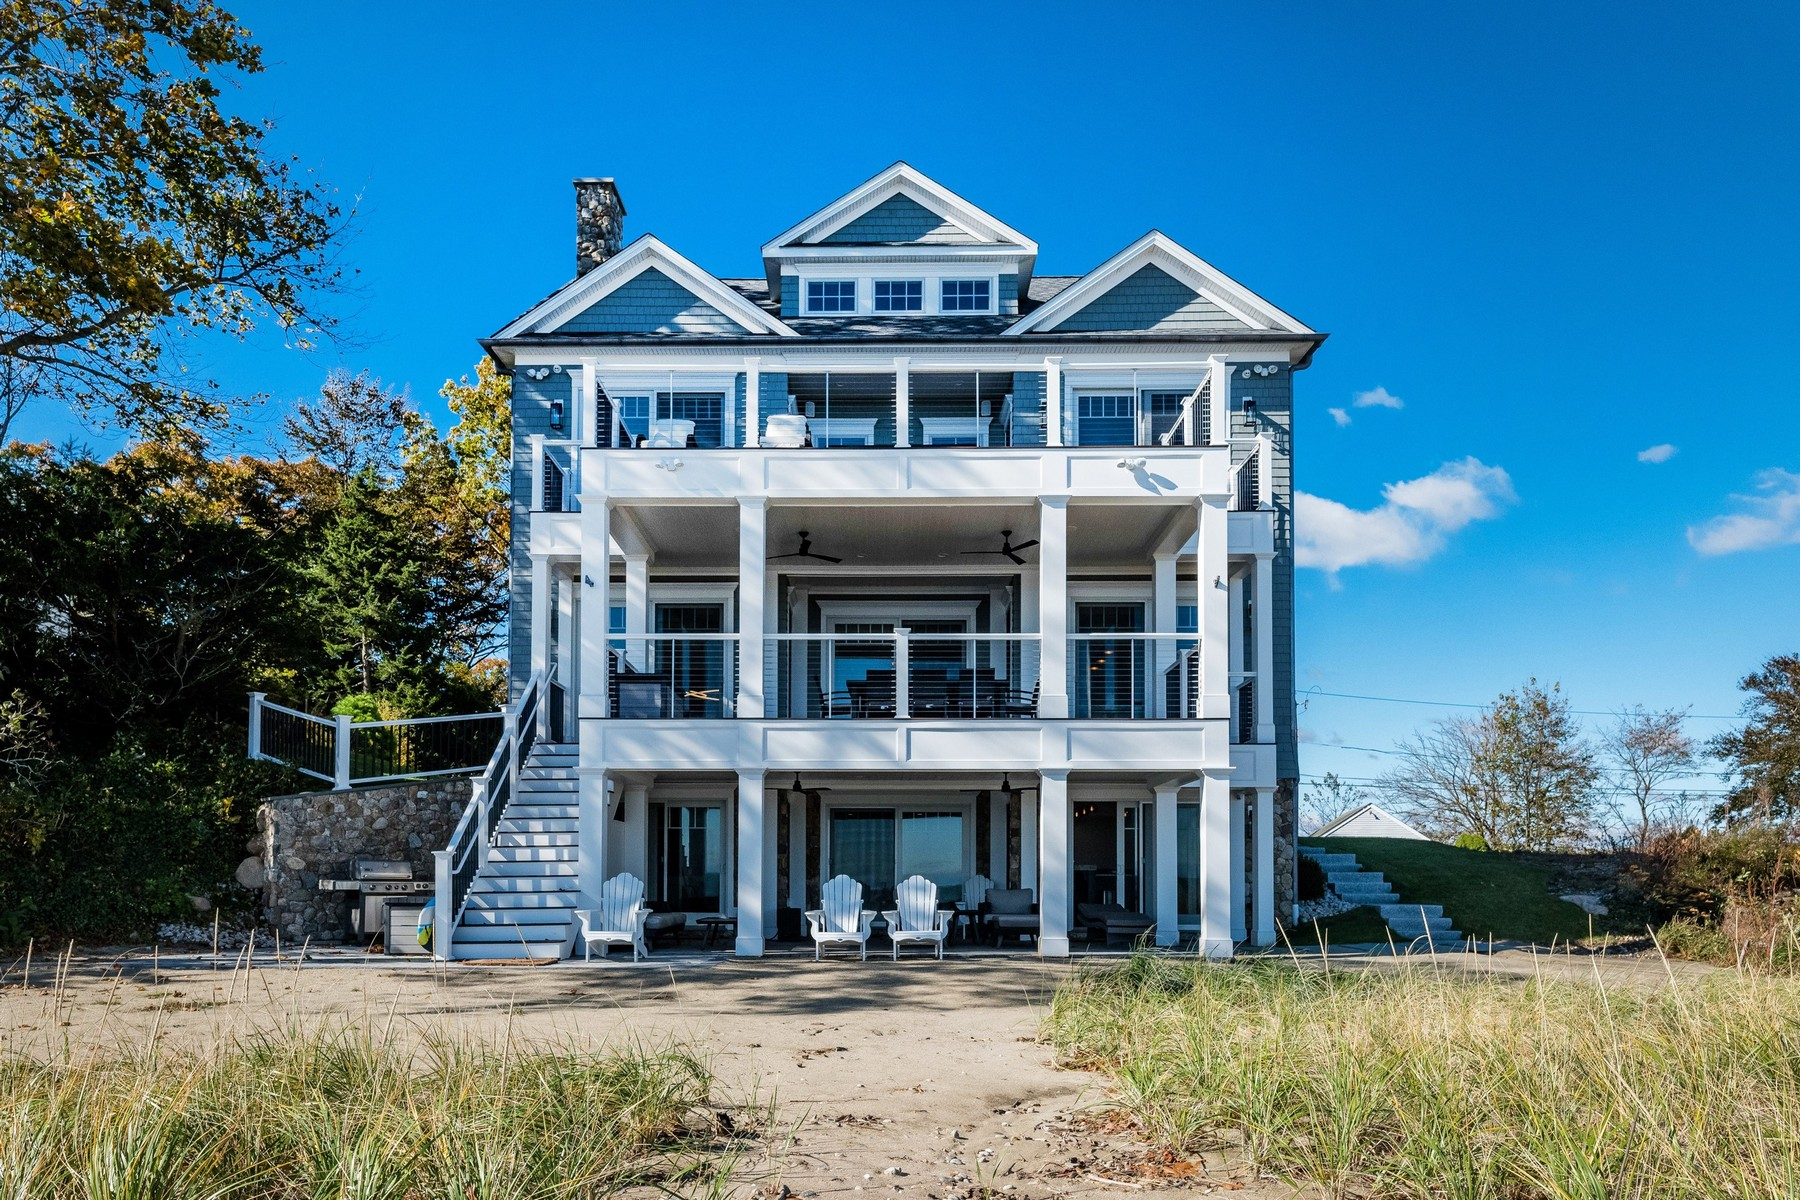 Single Family Homes for Sale at Beachfront Paradise Found! 63 Shore Road Clinton, Connecticut 06413 United States